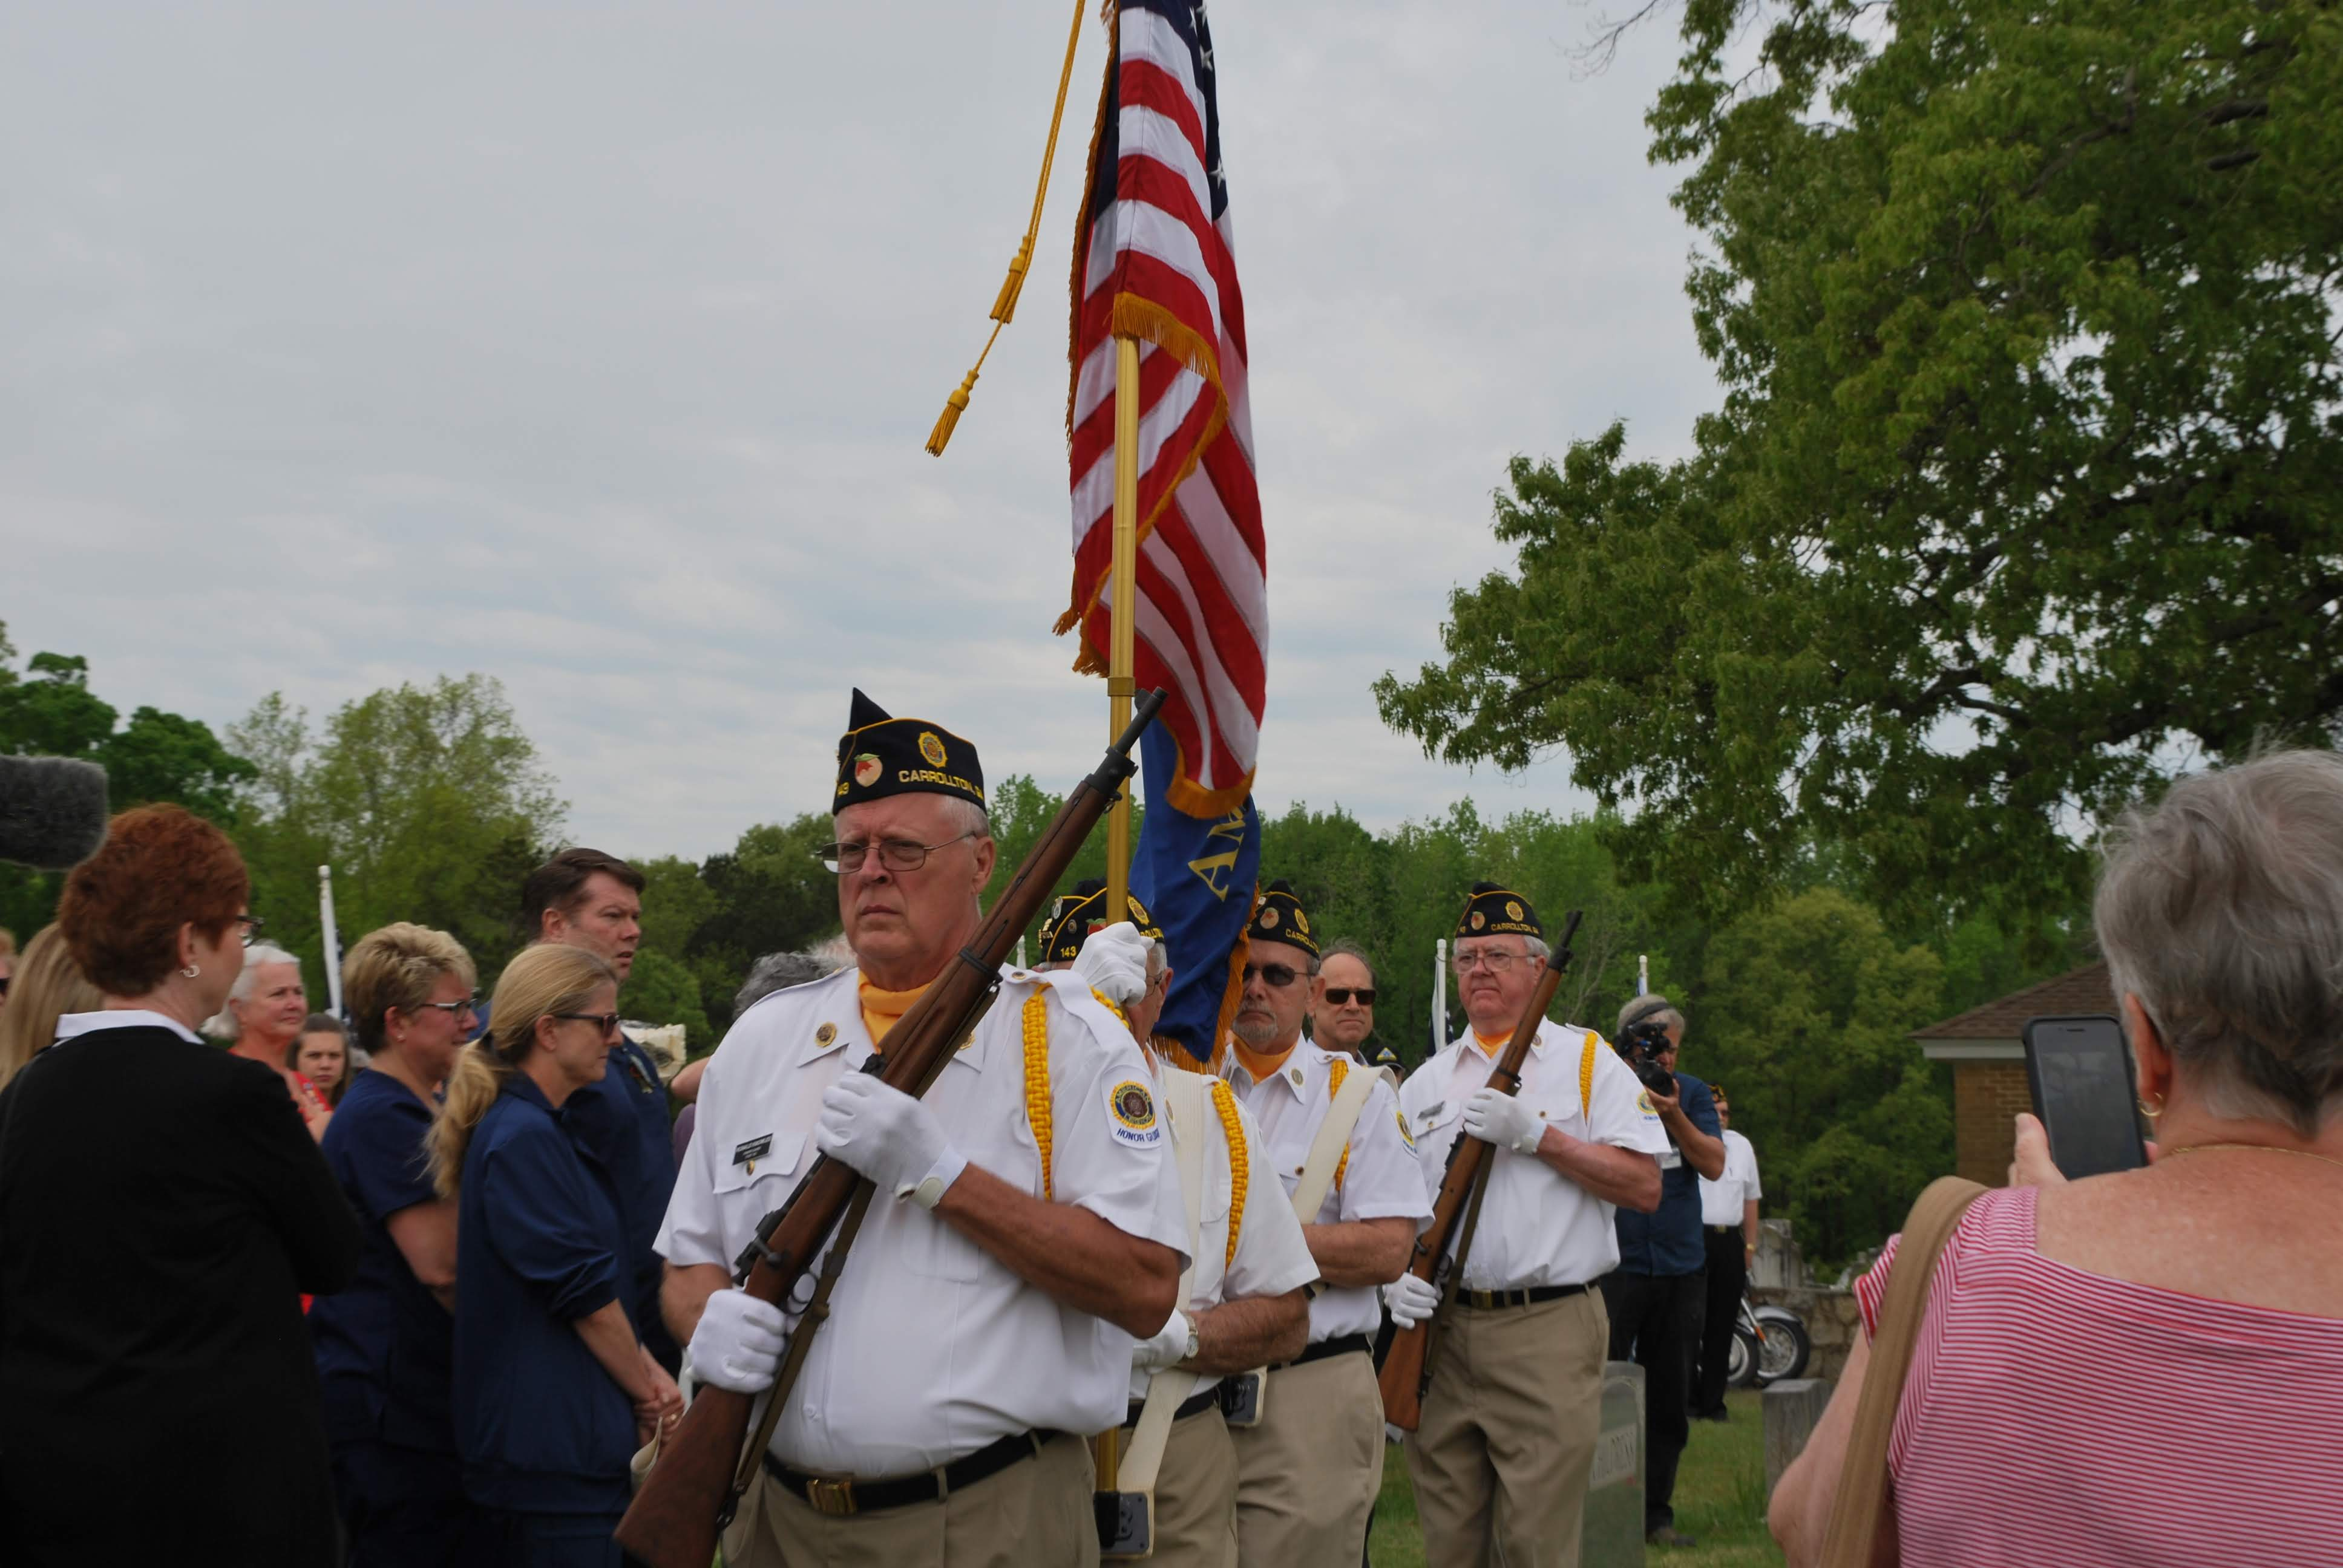 the color guard stand in a line with the US flag